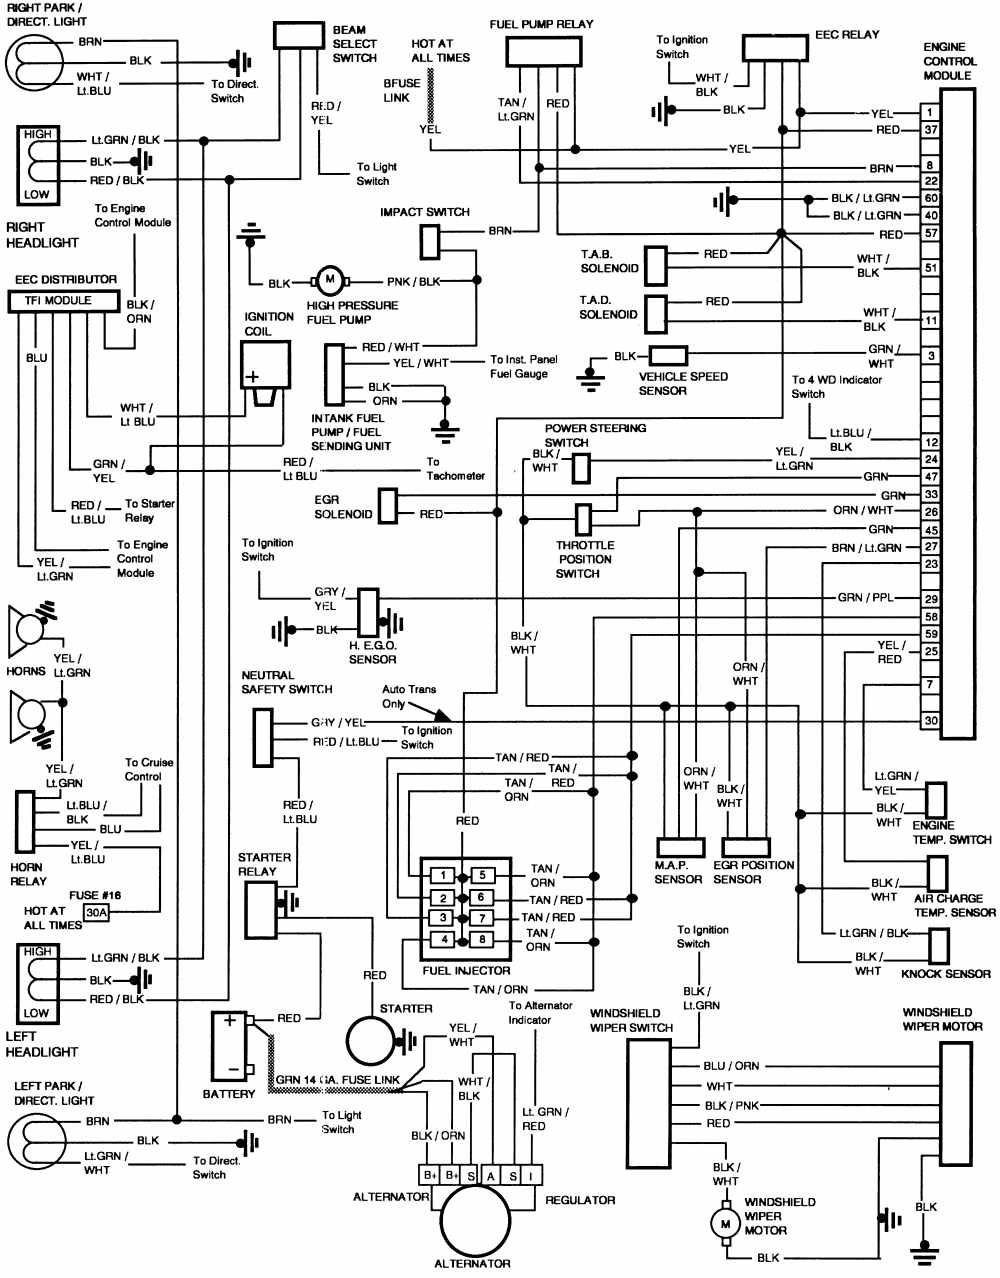 89 F250 Fuse Box Diagram, 89, Get Free Image About Wiring